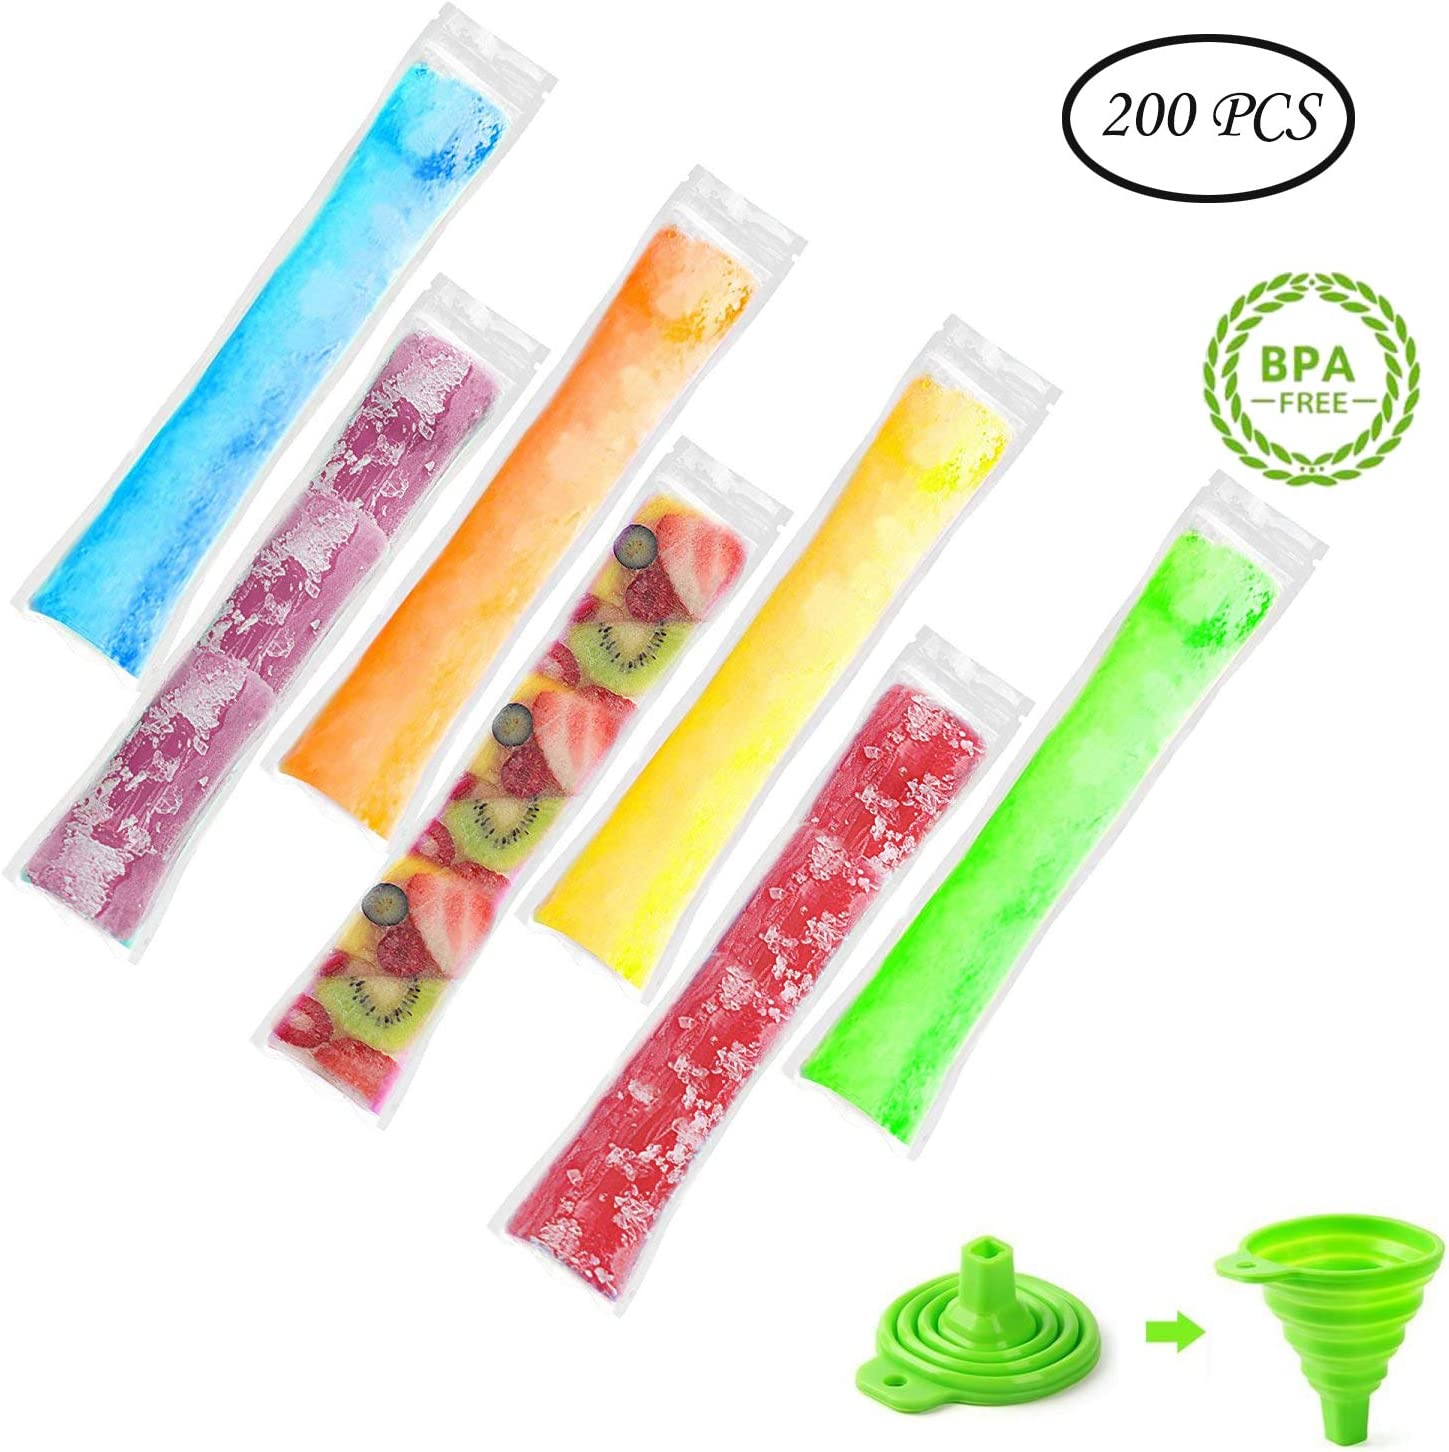 600PCS 800PCS Ice Cream Popsicle Mold Ice Disposable Bags Tubes Free Shipping!